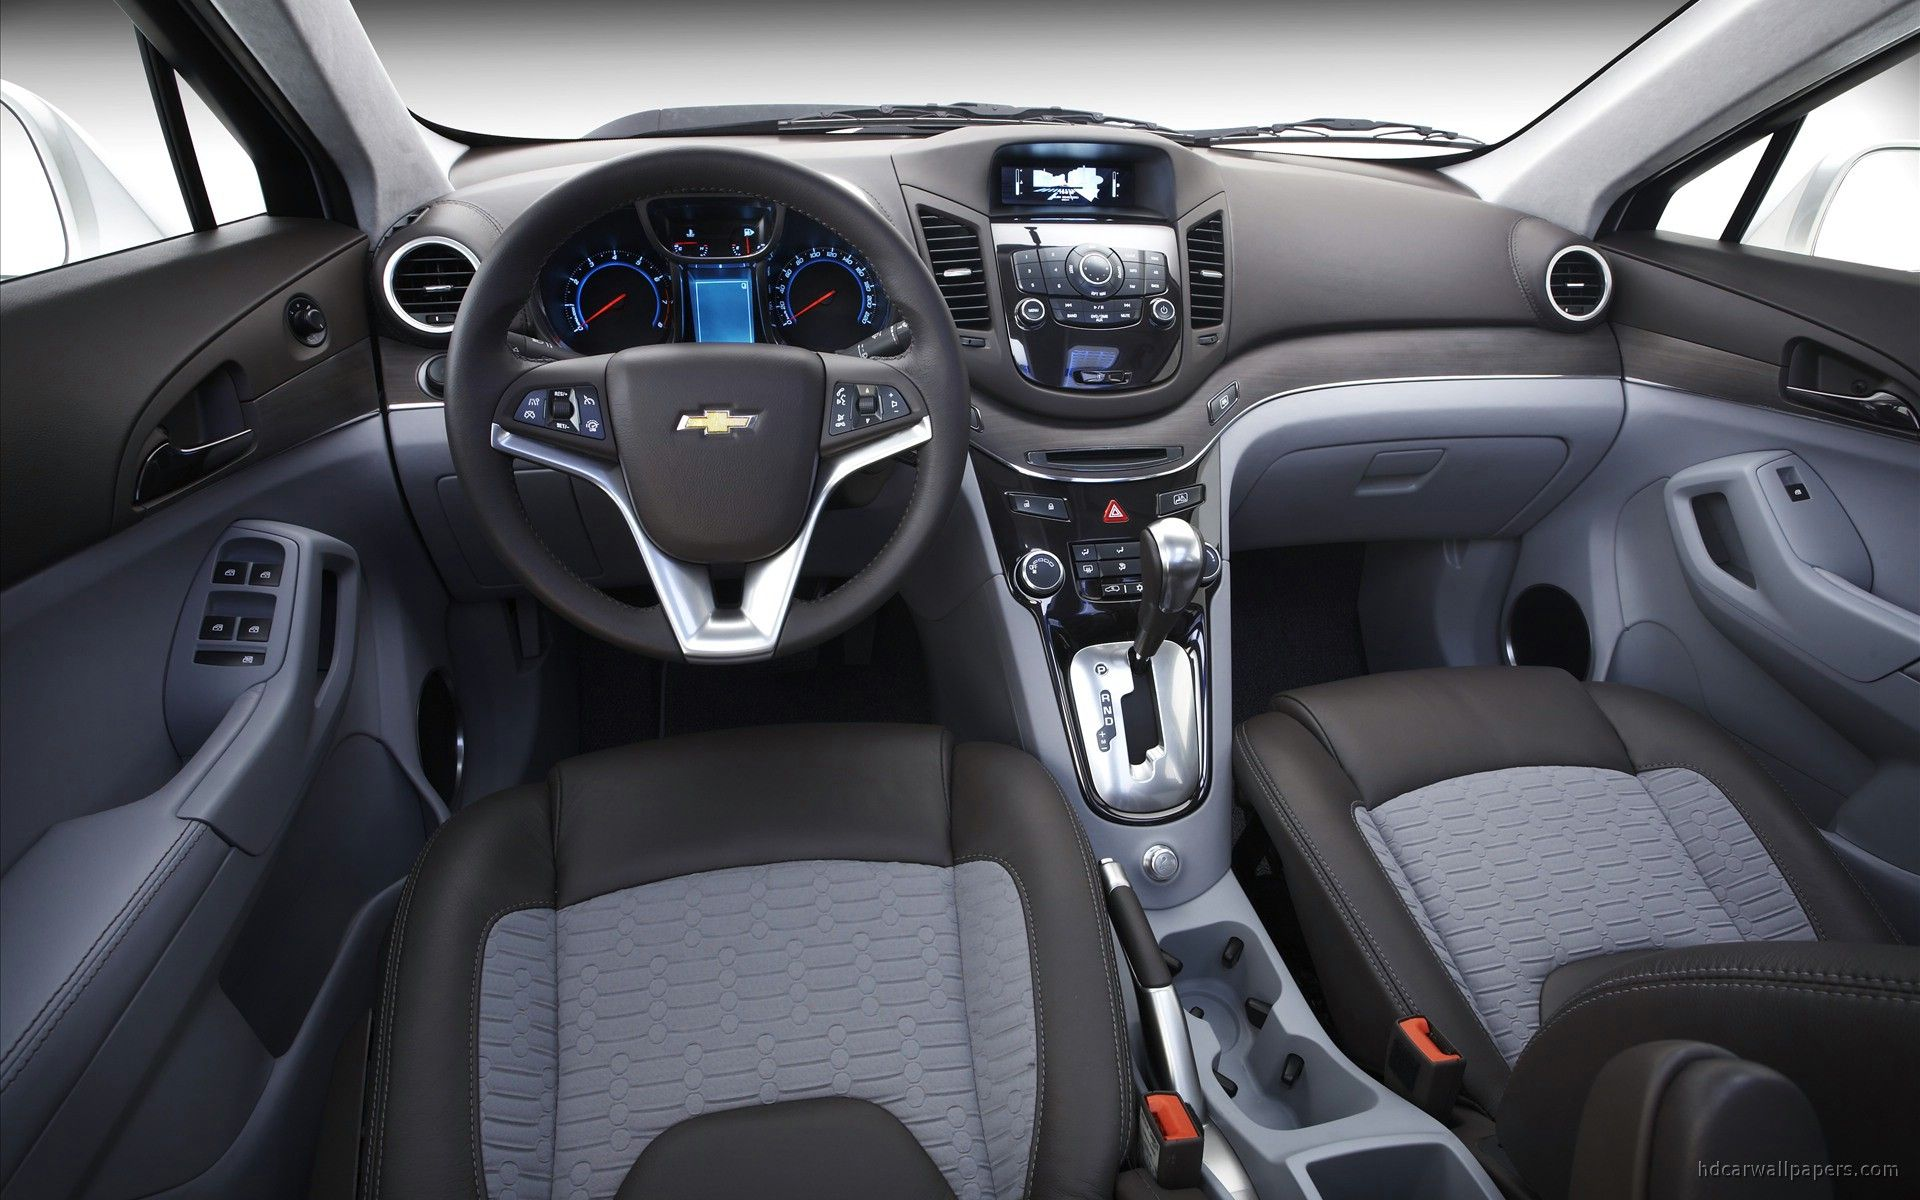 Chevrolet Orlando Show Car Interior Wallpaper | HD Car Wallpapers